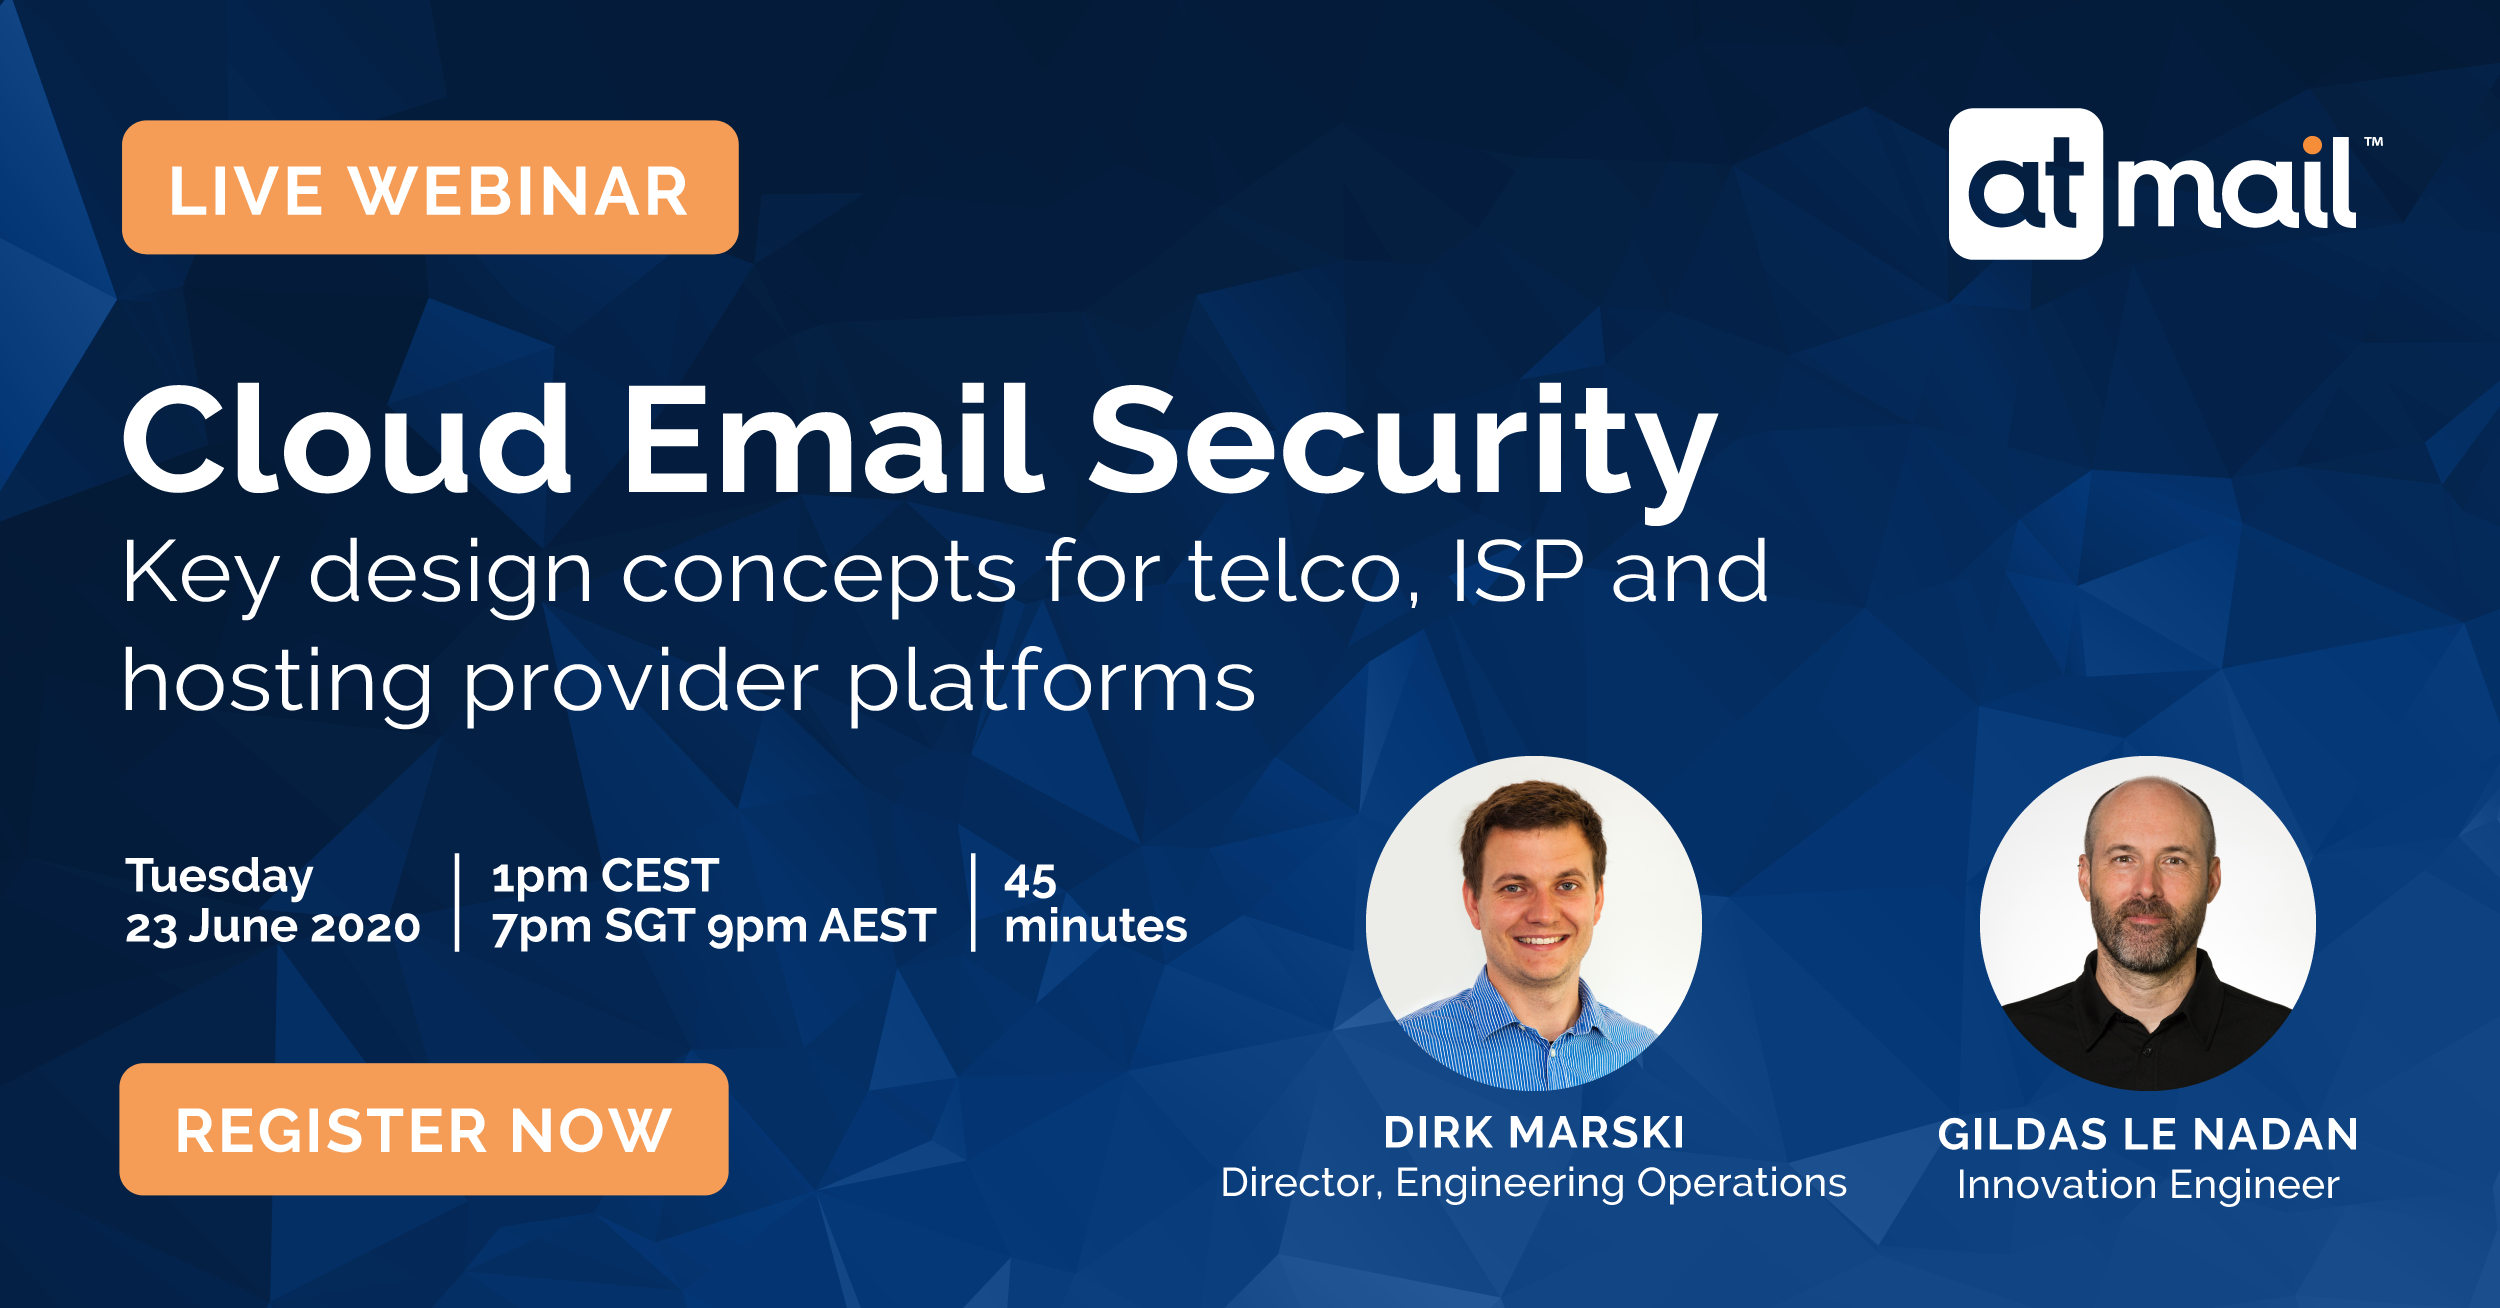 Cloud Email Security - atmail webinar, Dirk Marski, Gildas Le Nadan, cloud hosted email, email hosting for telcos, ISPs and hosting providers